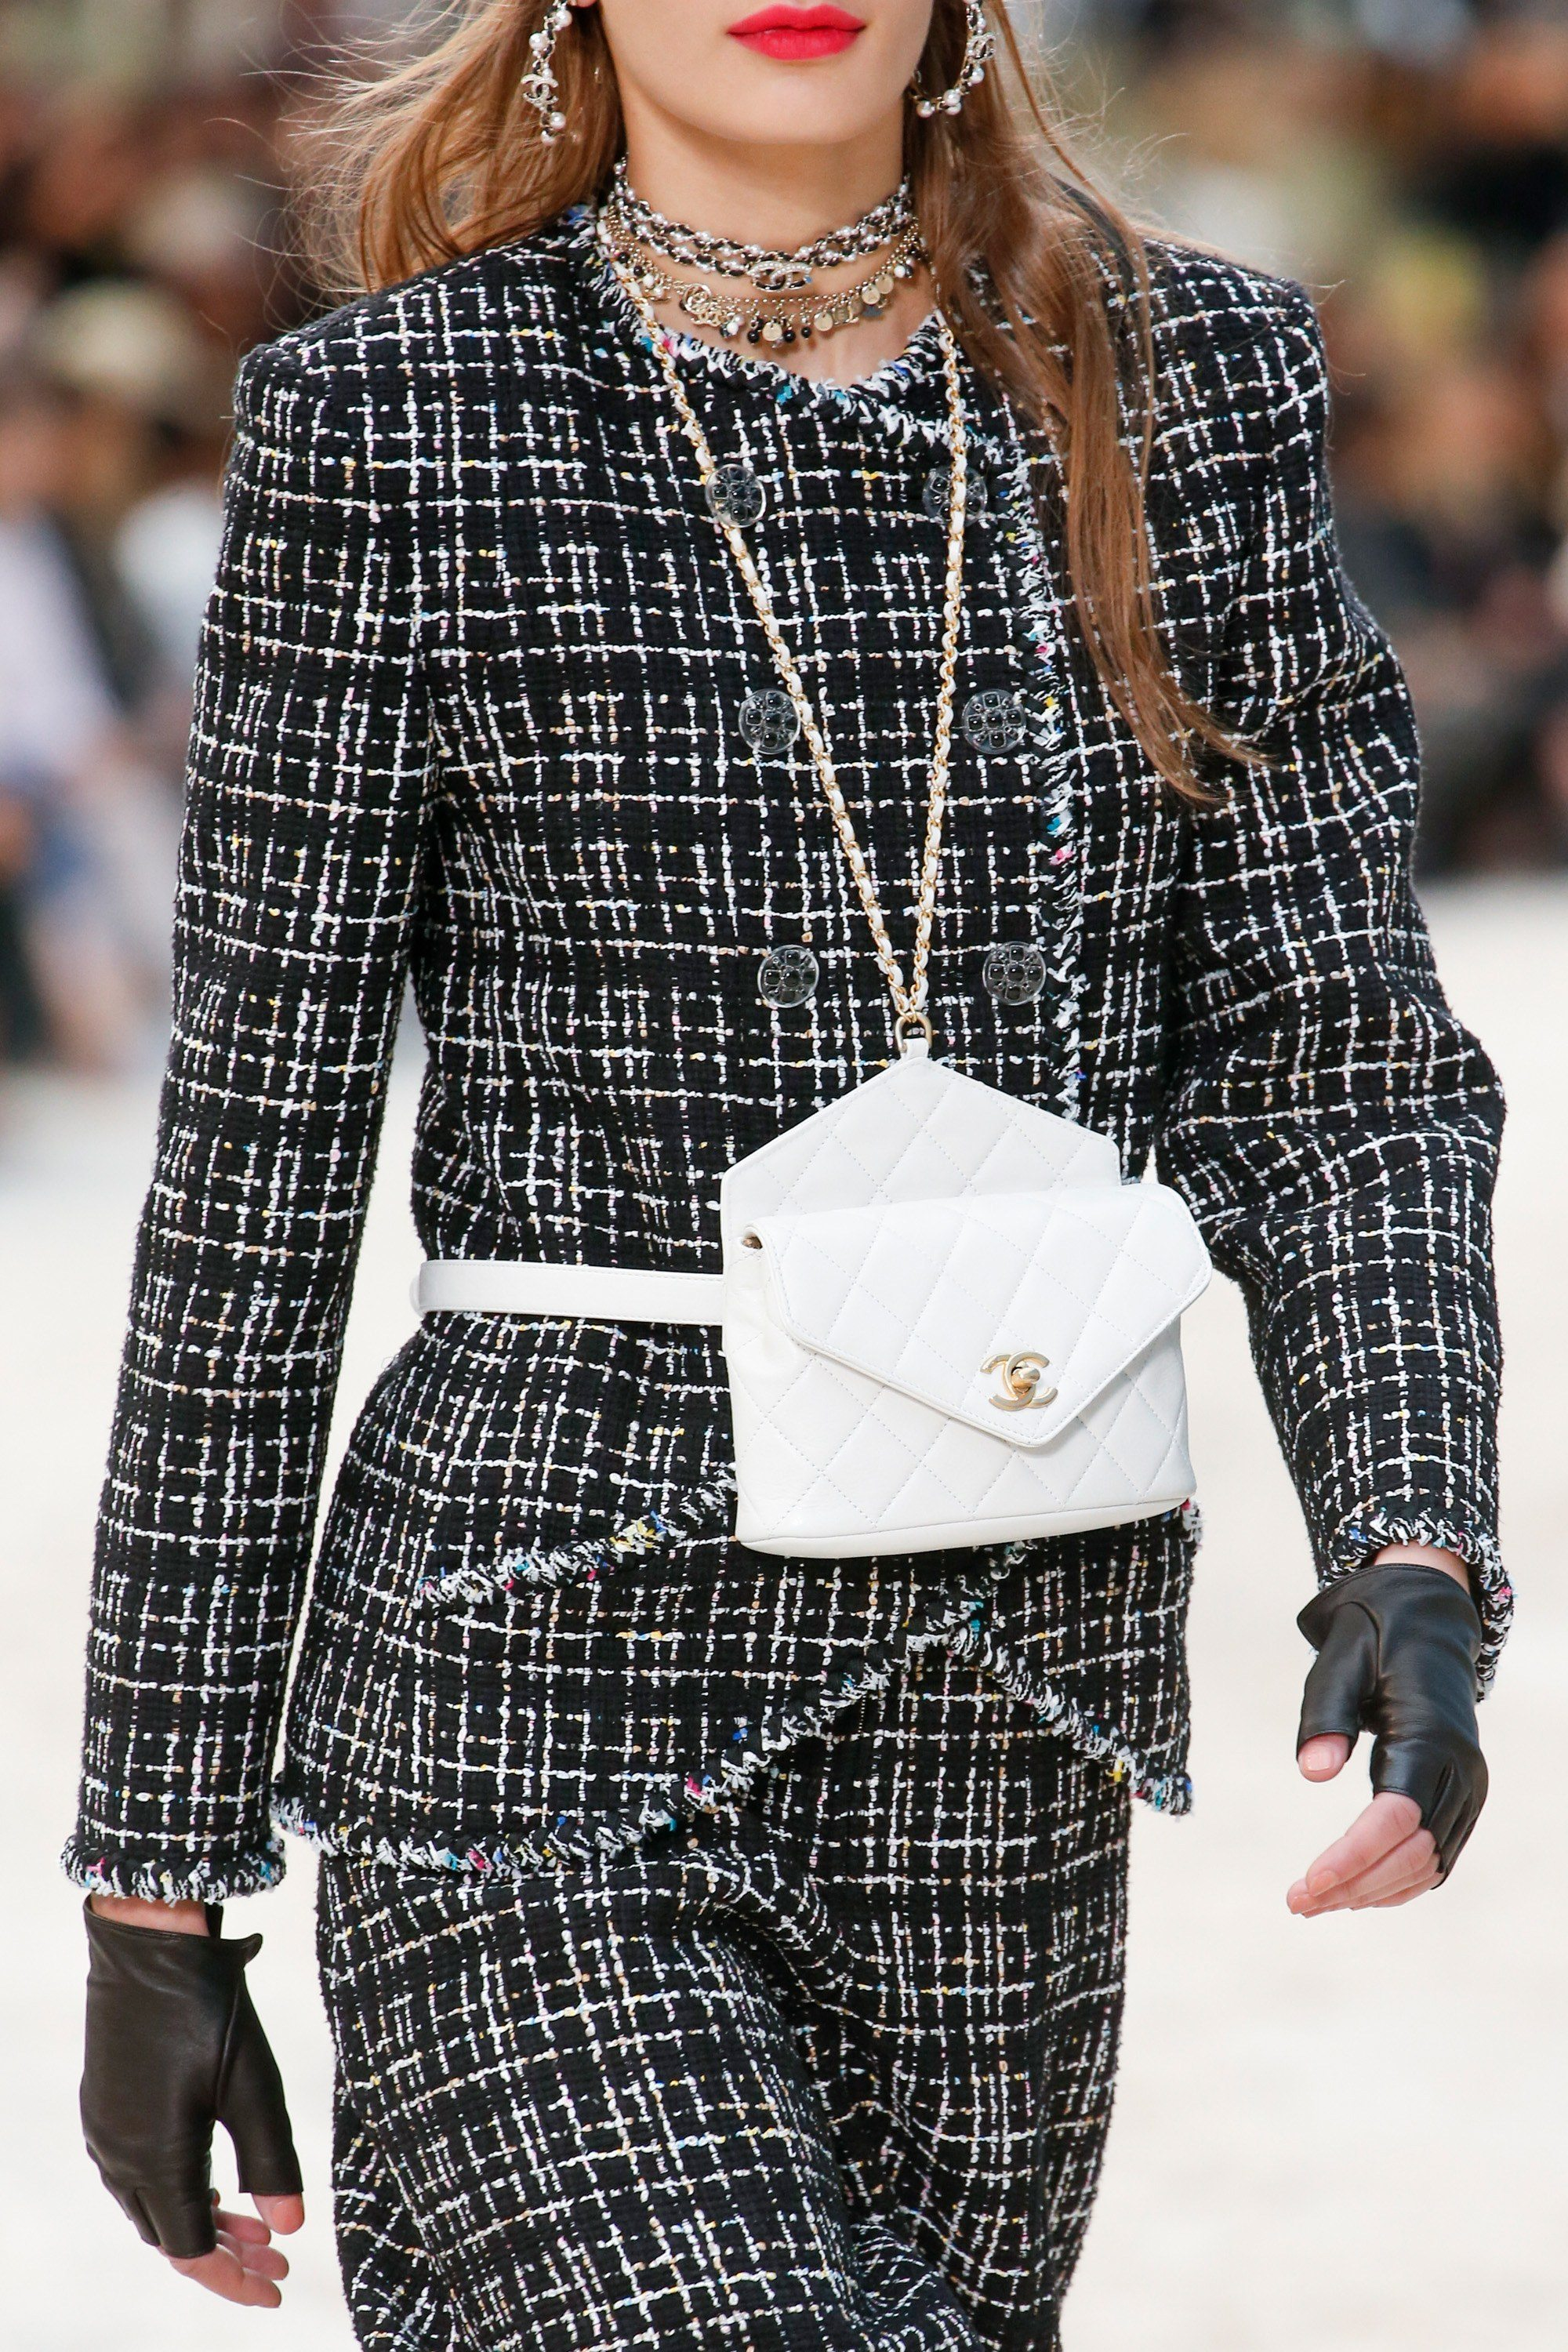 White leather Chanel belt bag from the Spring 2019 Runway collection